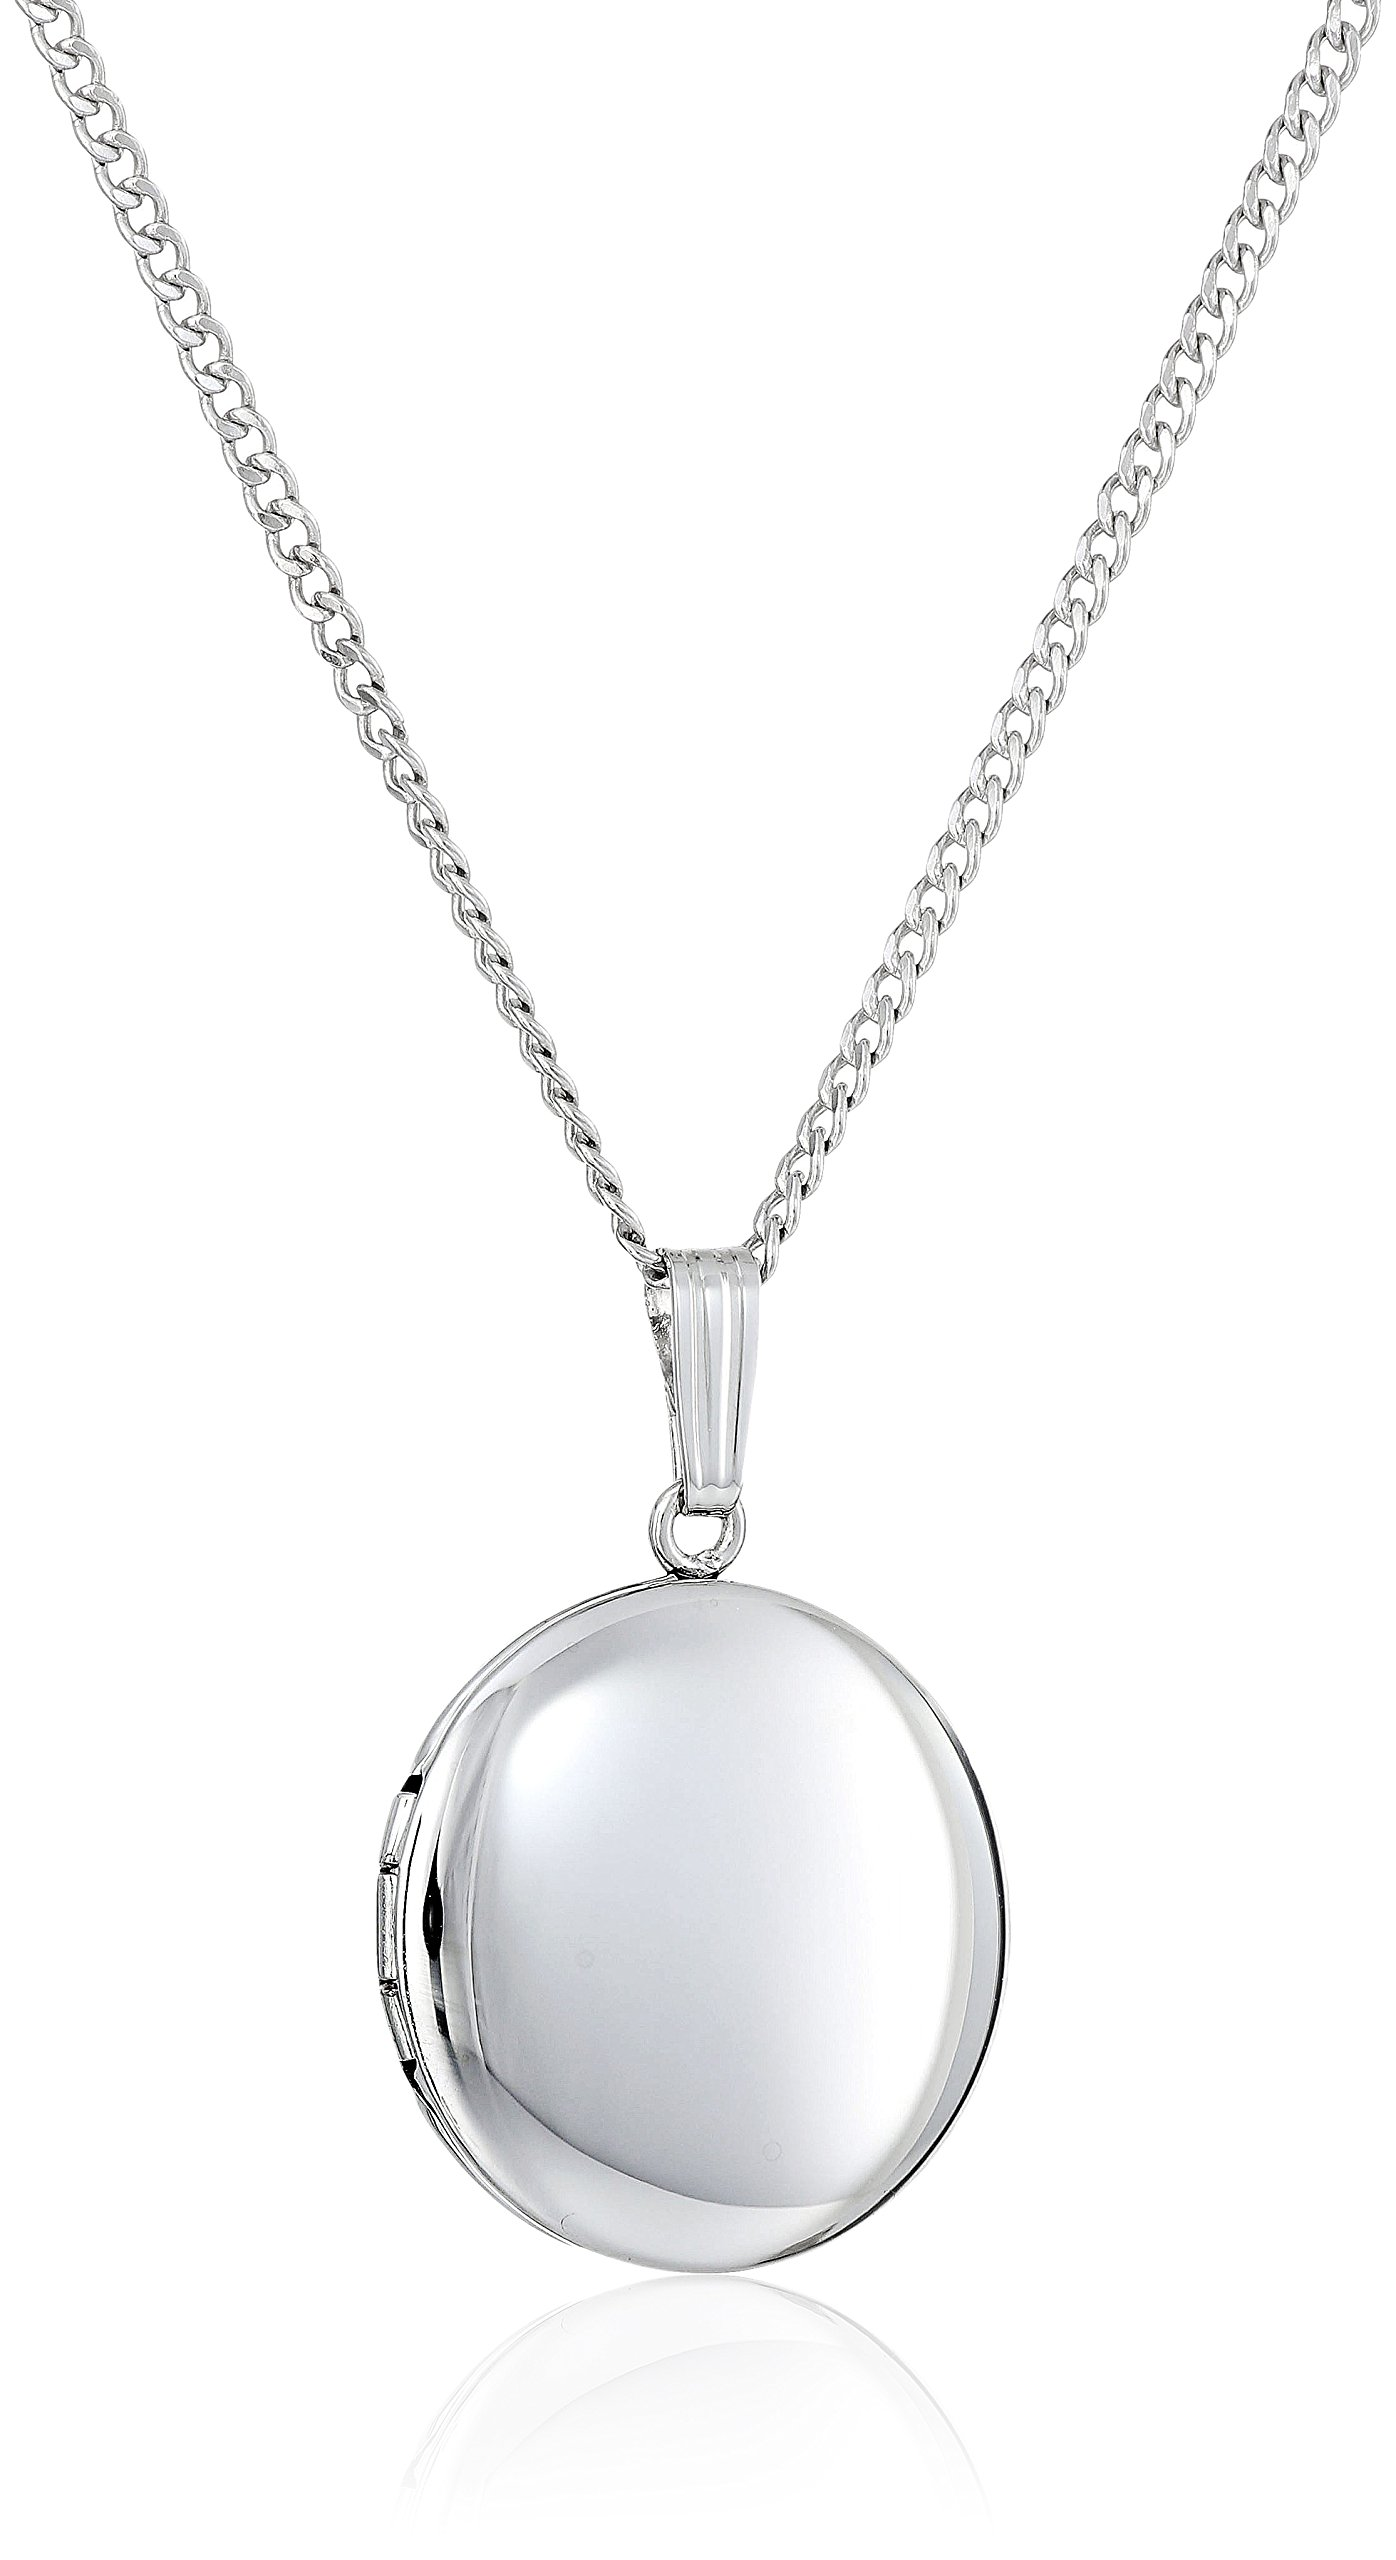 Sterling Silver Polished Round Locket Necklace, 18''